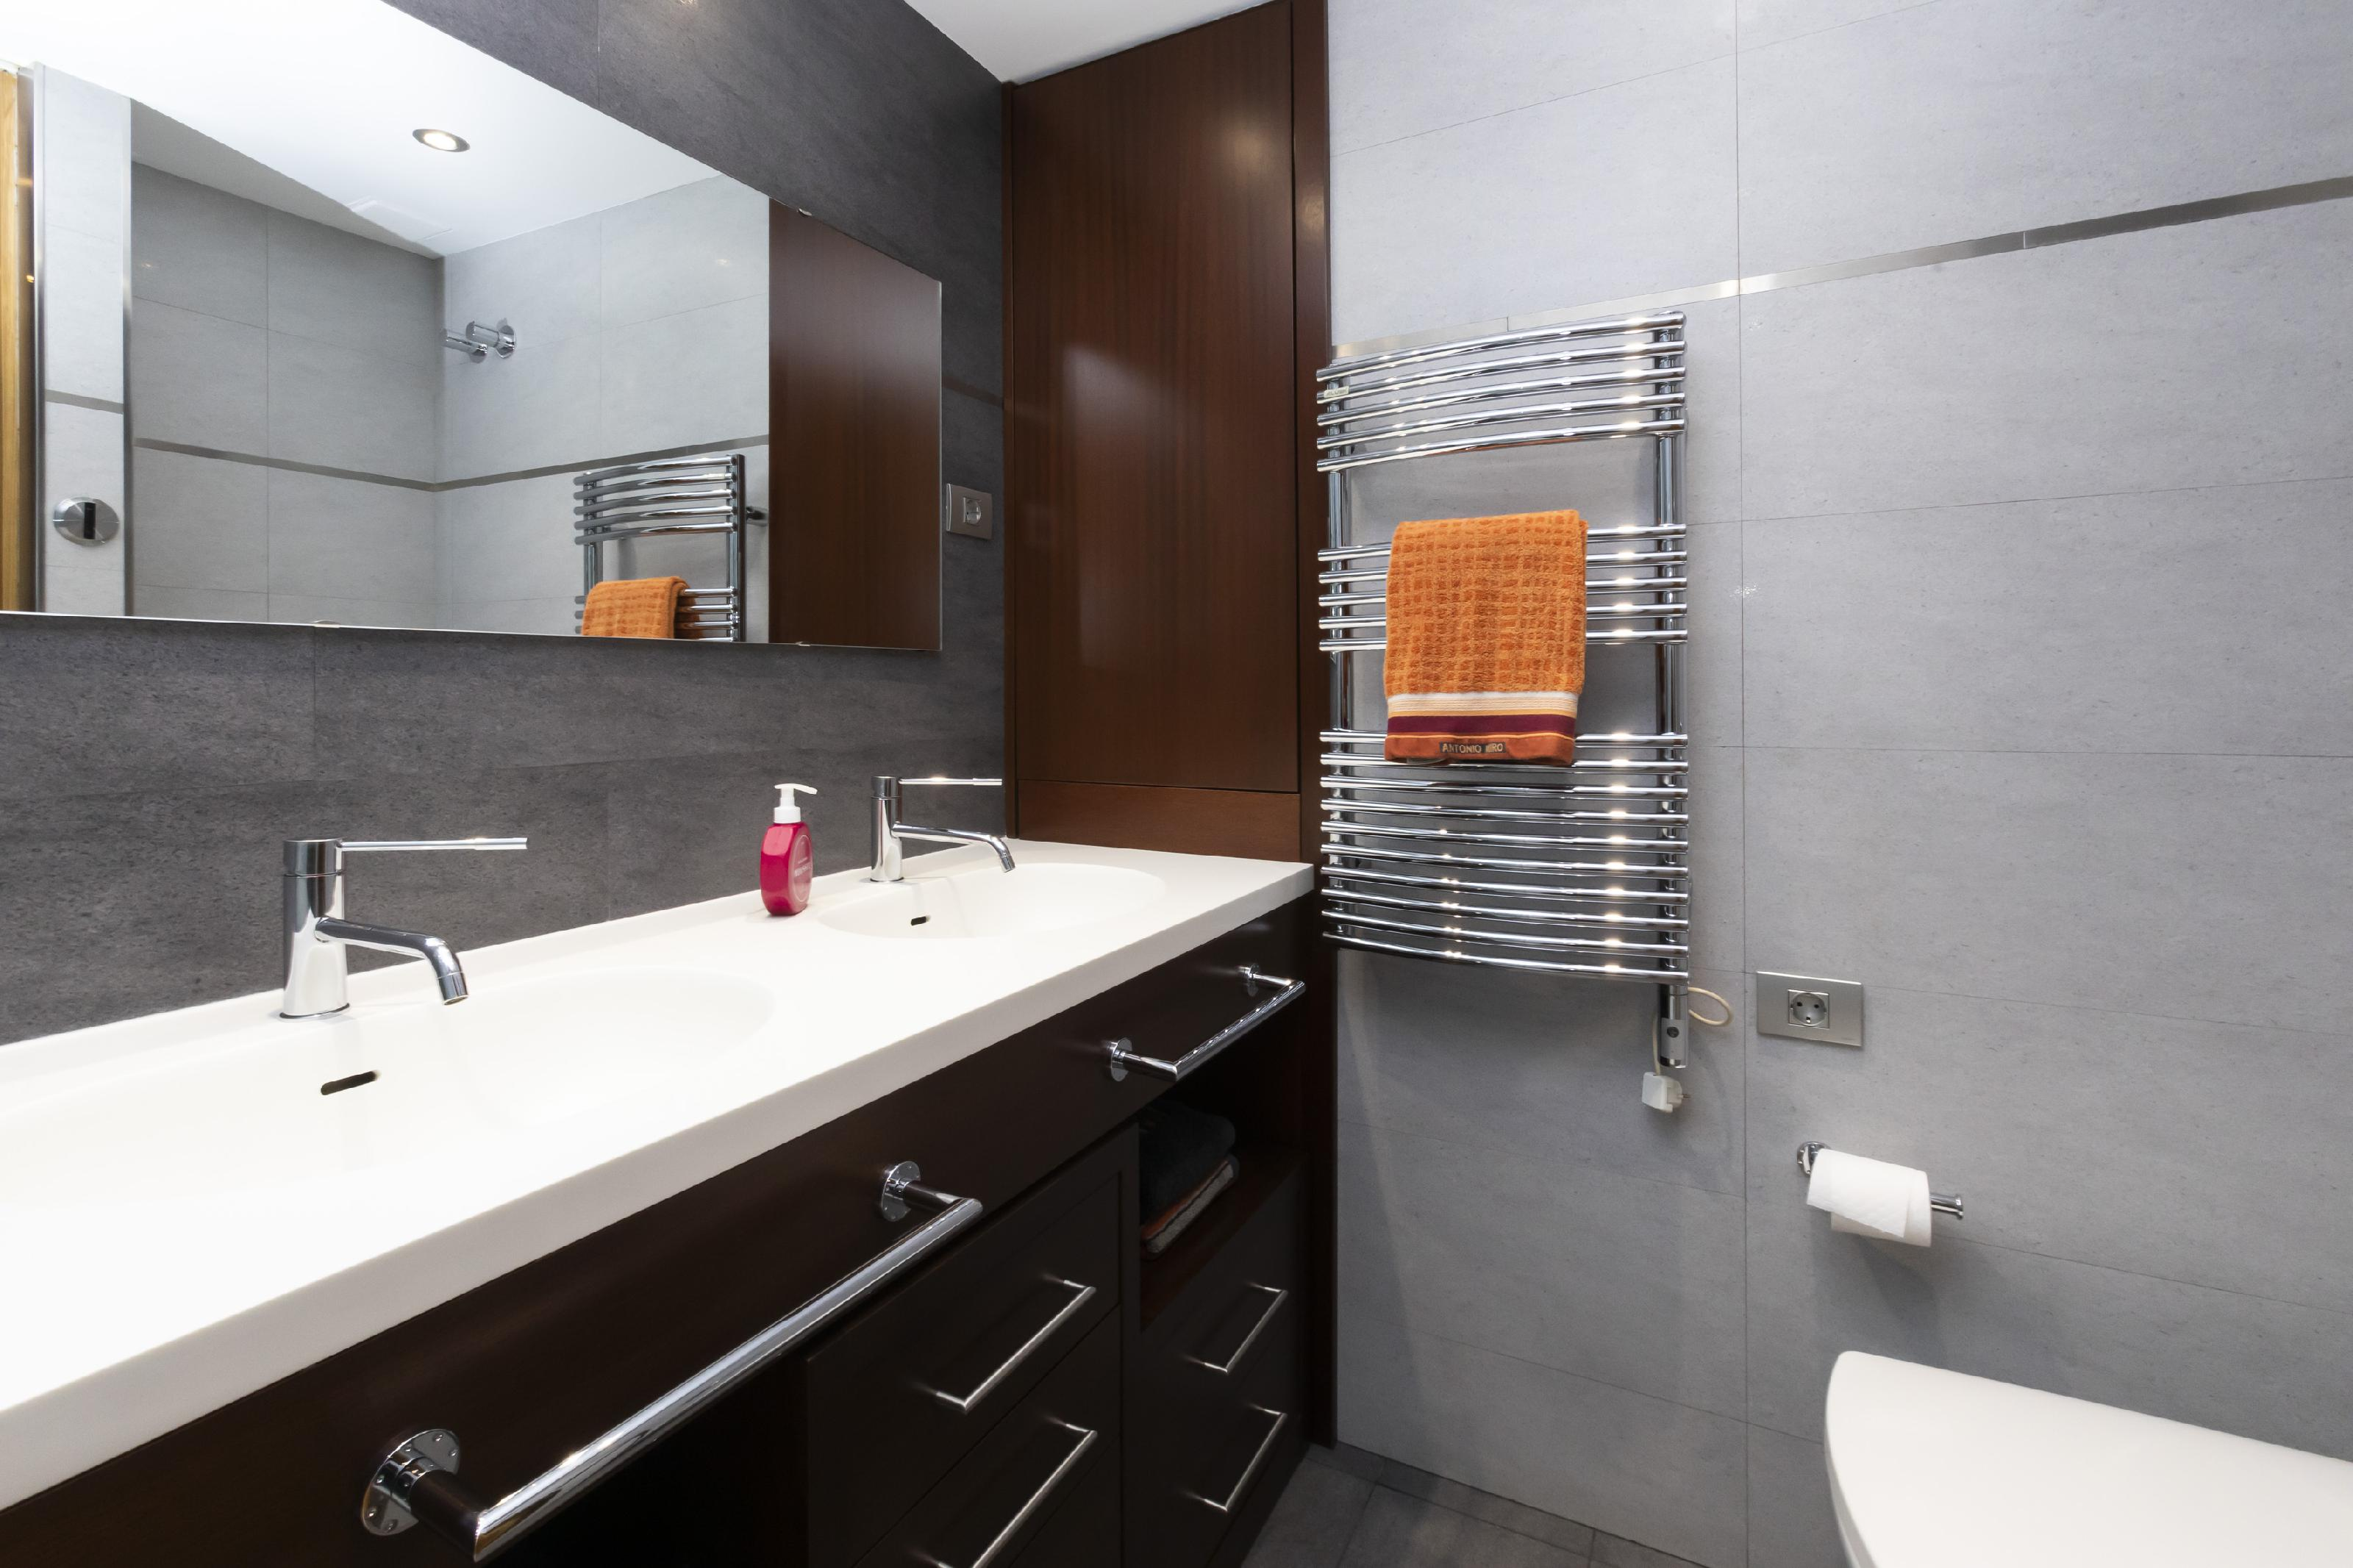 247020 Flat for sale in Les Corts, Les Corts 29